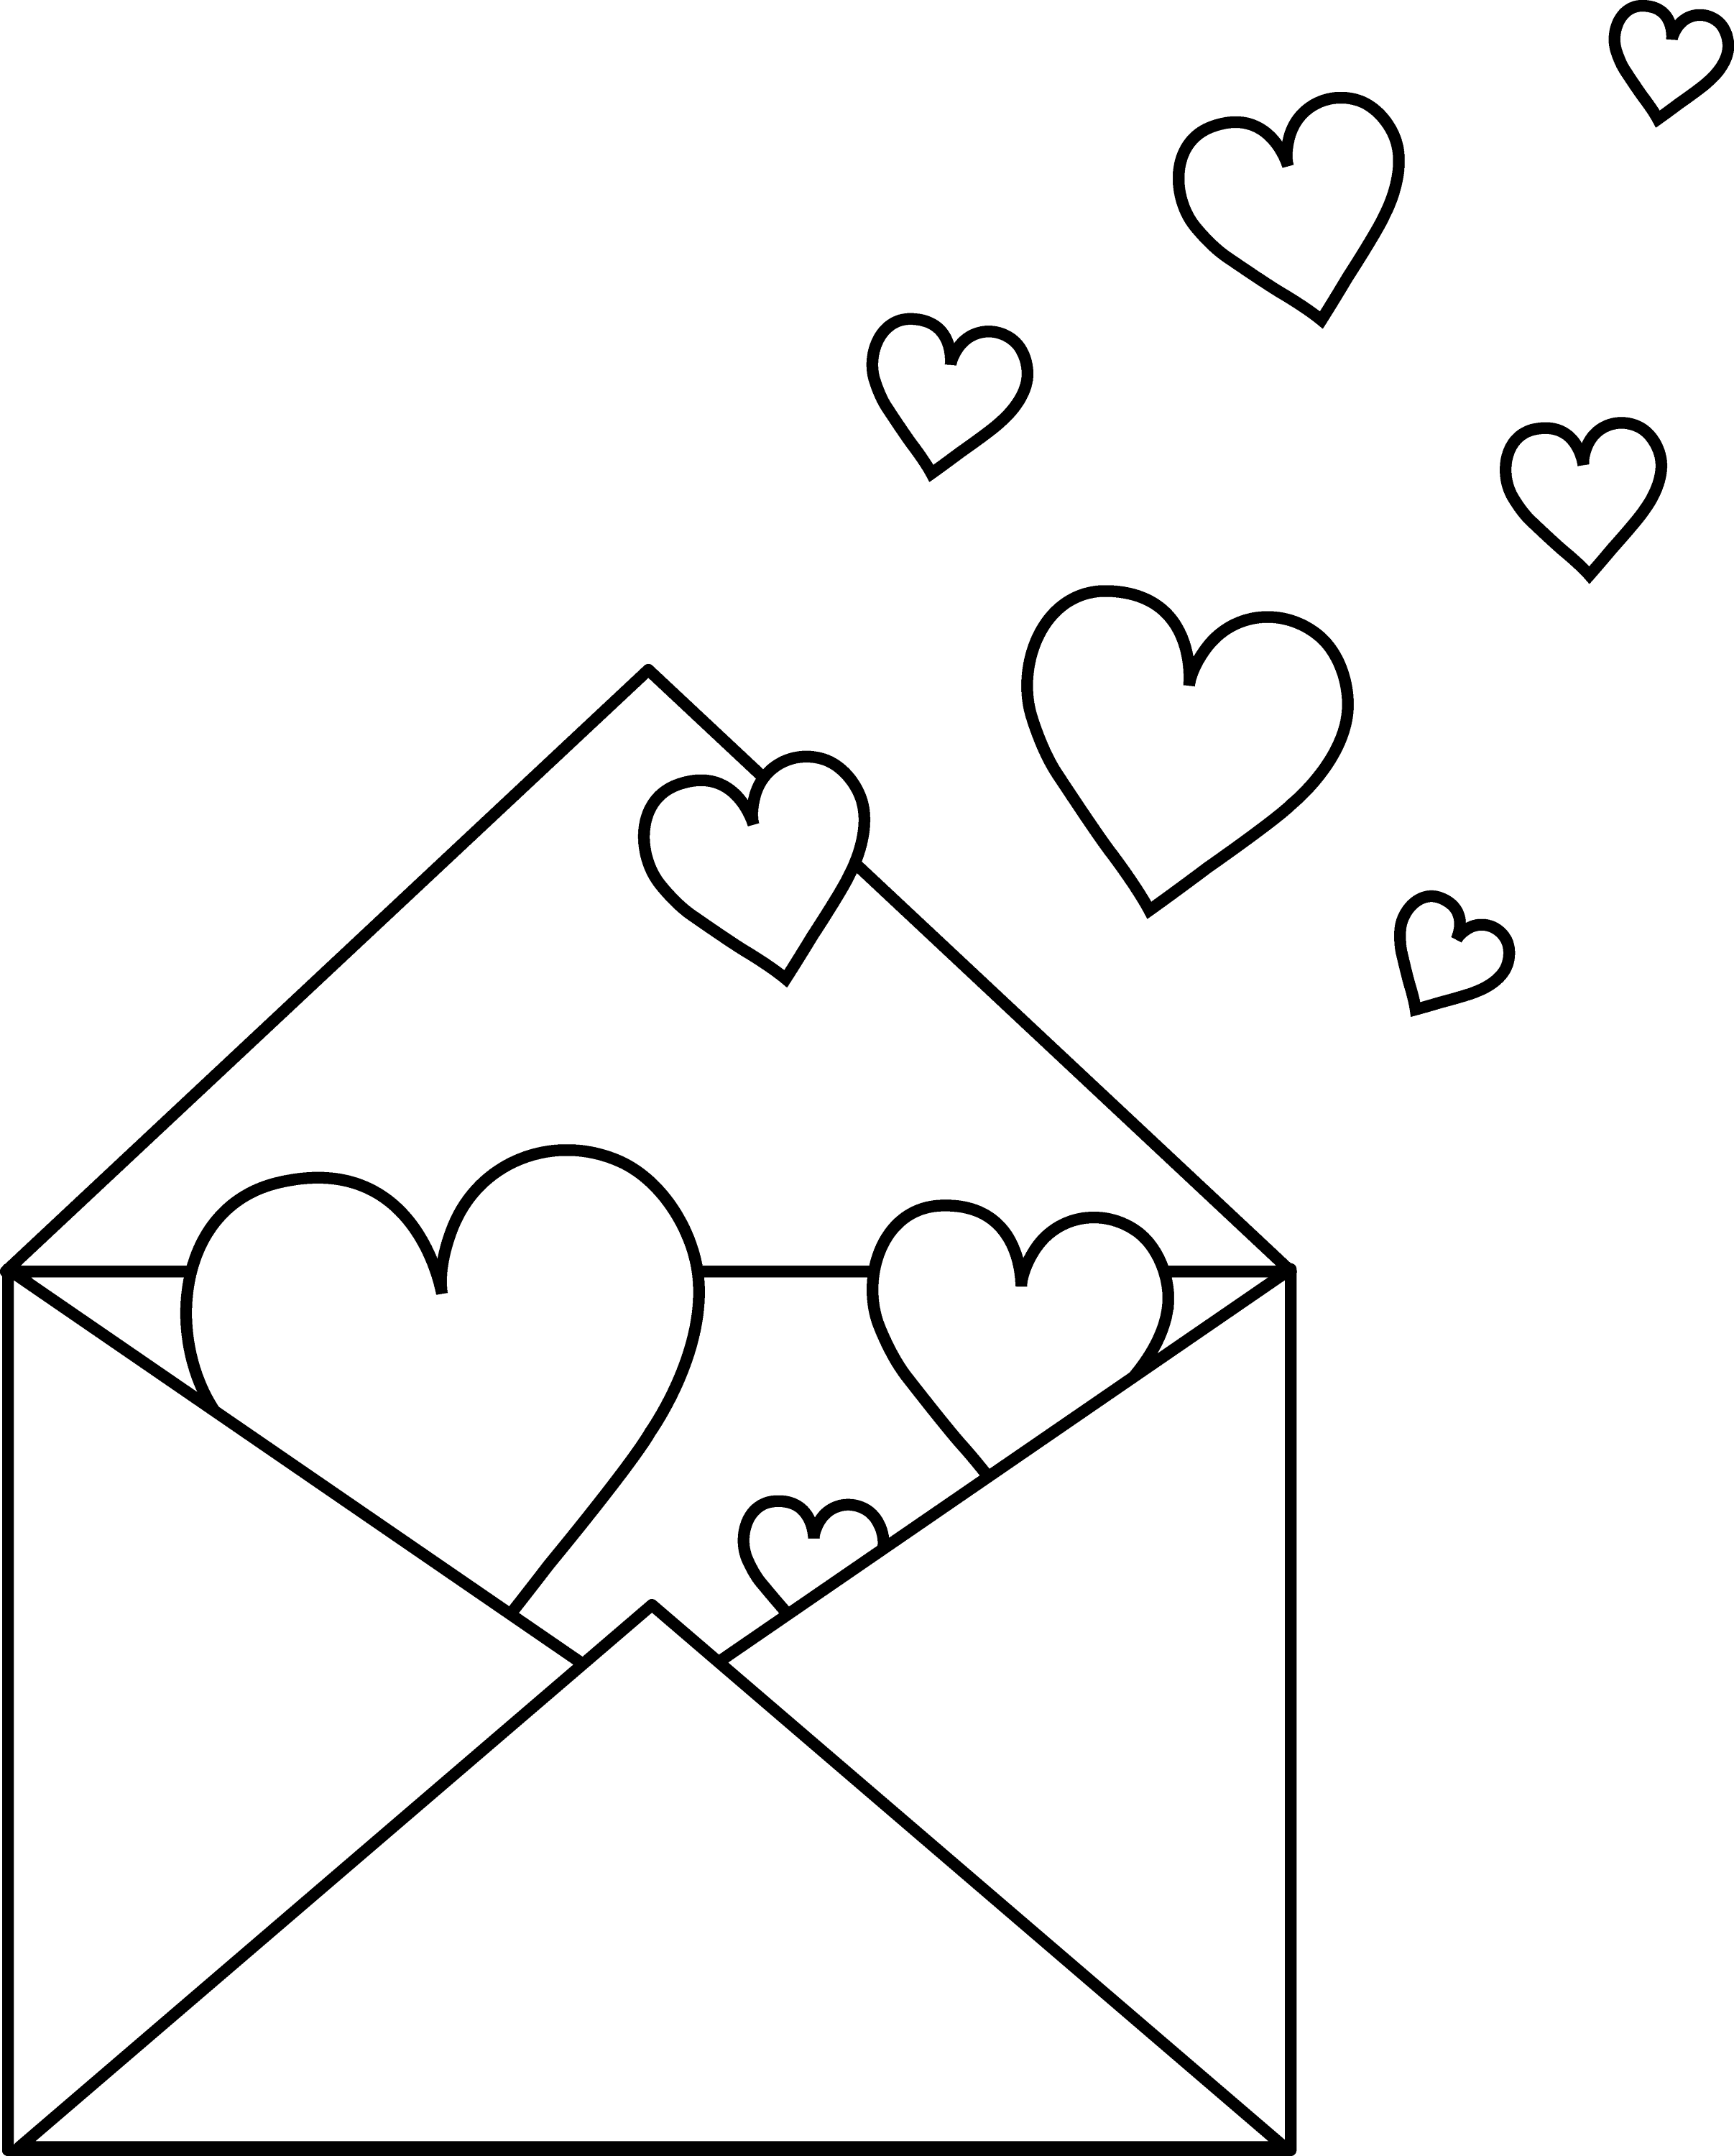 Line Art Heart Outline : Free coloring pages of love notes